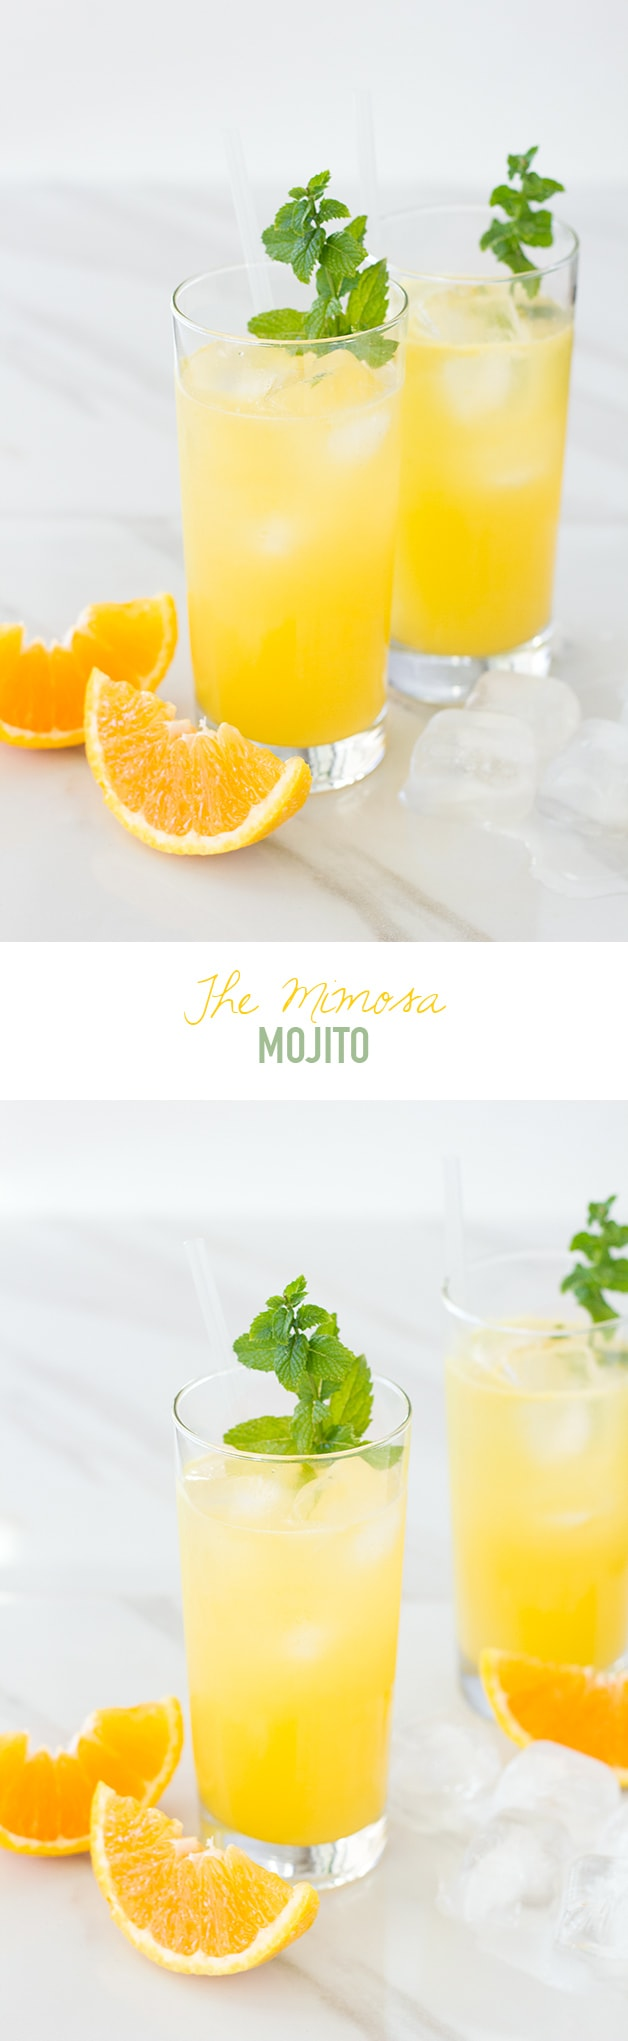 Mimosa meets mojito - this fun spin on a mojito combines two classic cocktails for a refreshing (but strong!) summer sipper.